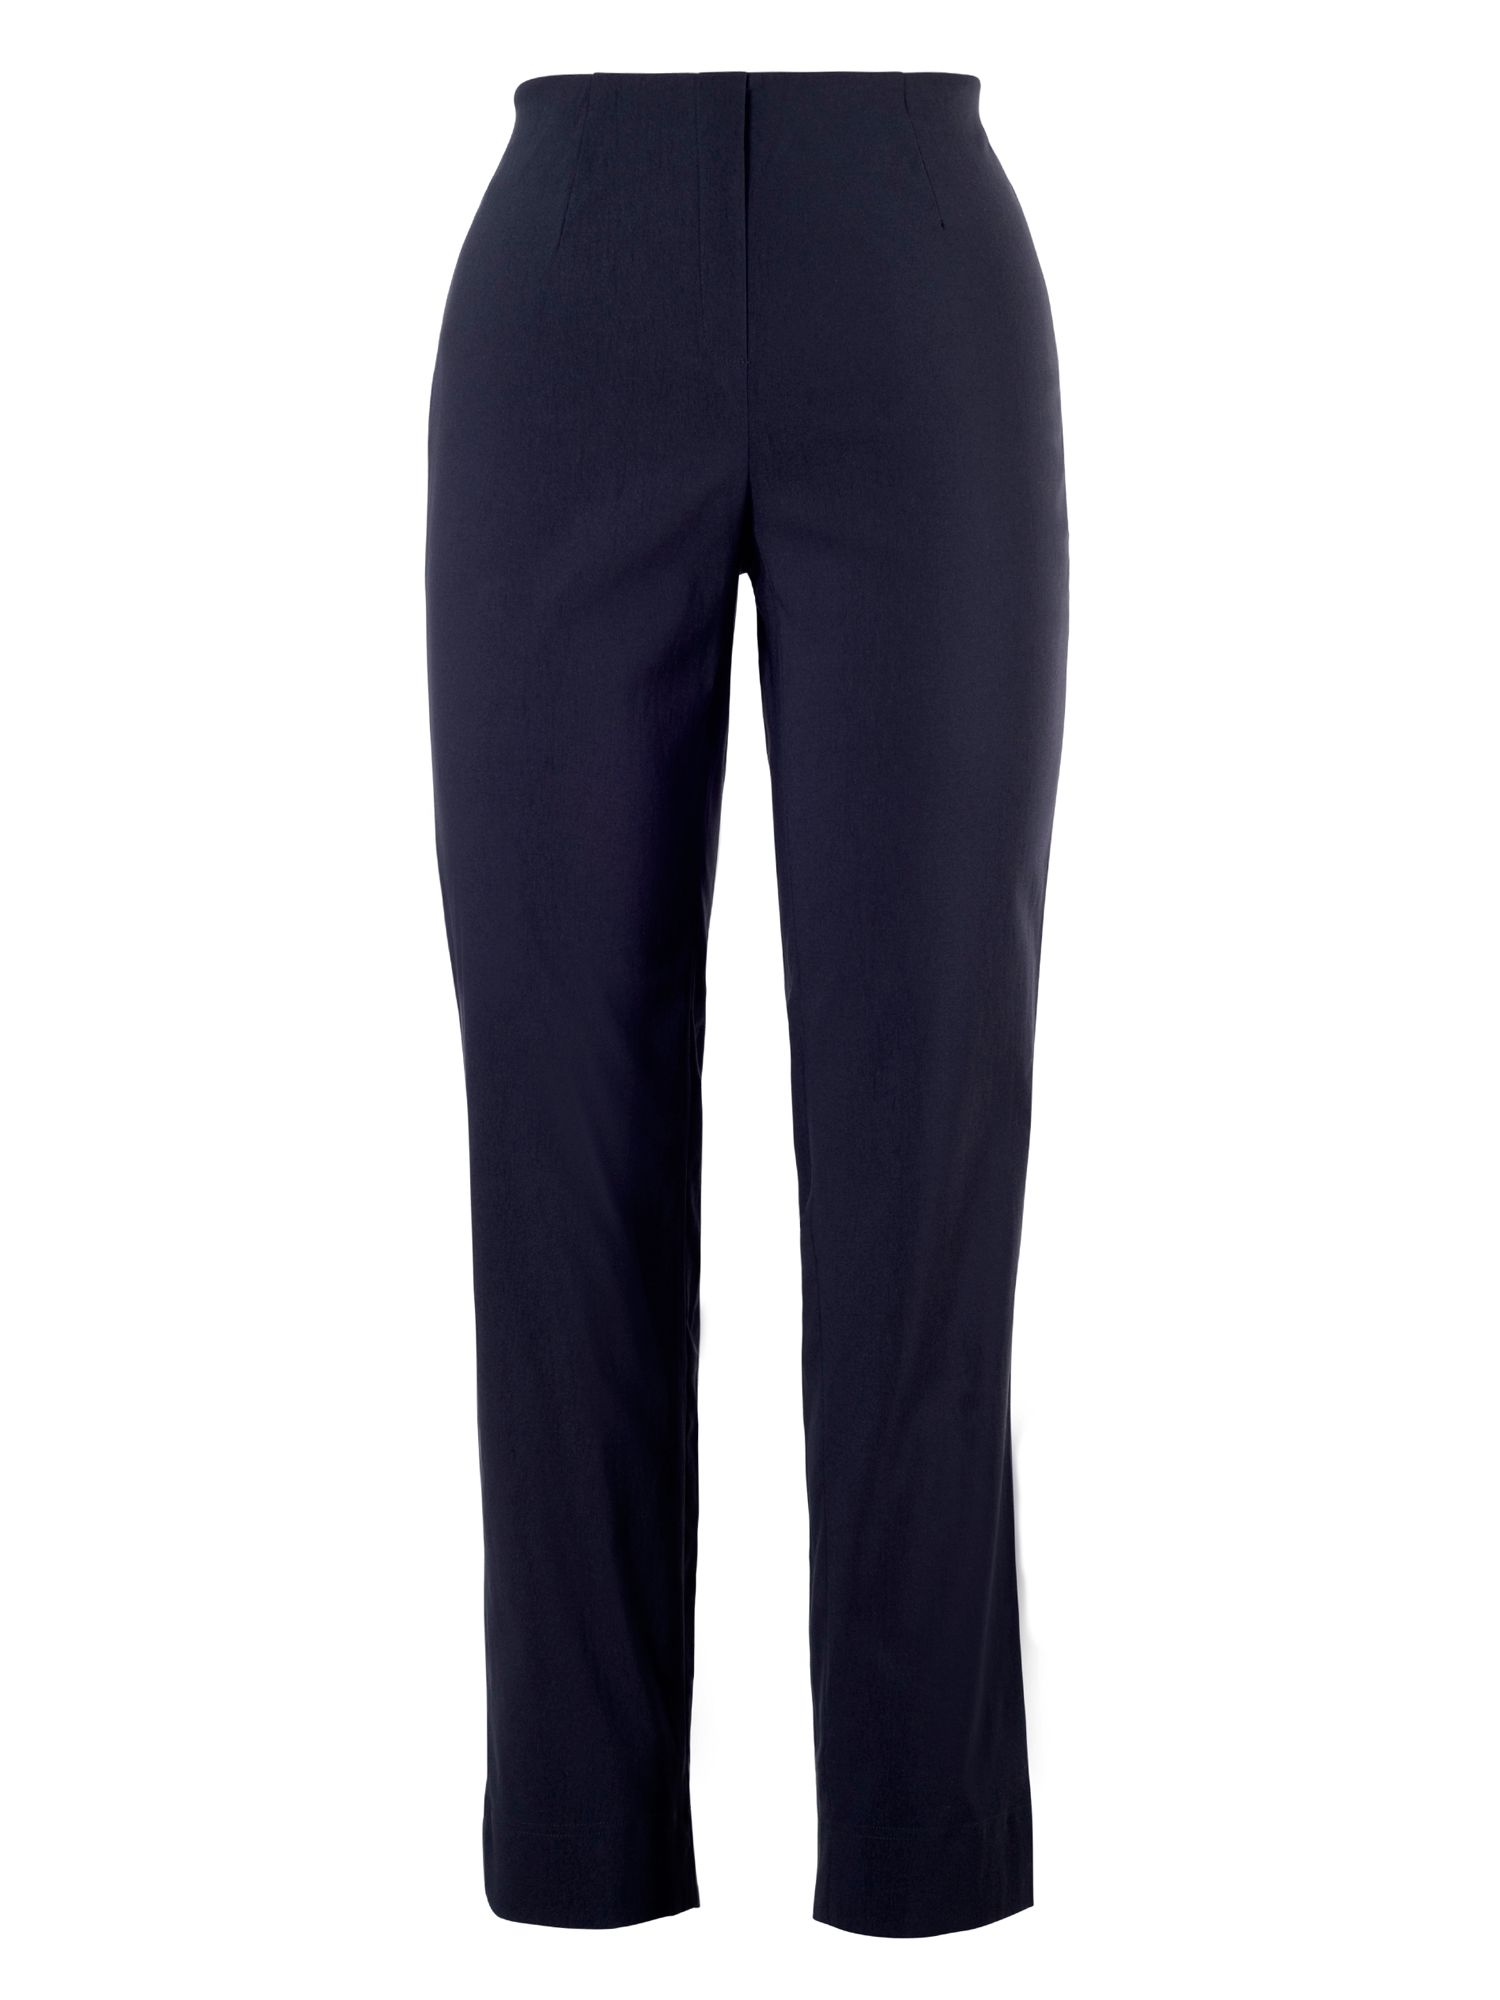 Chesca Pull On Stretch Slim Leg Trouser, Blue